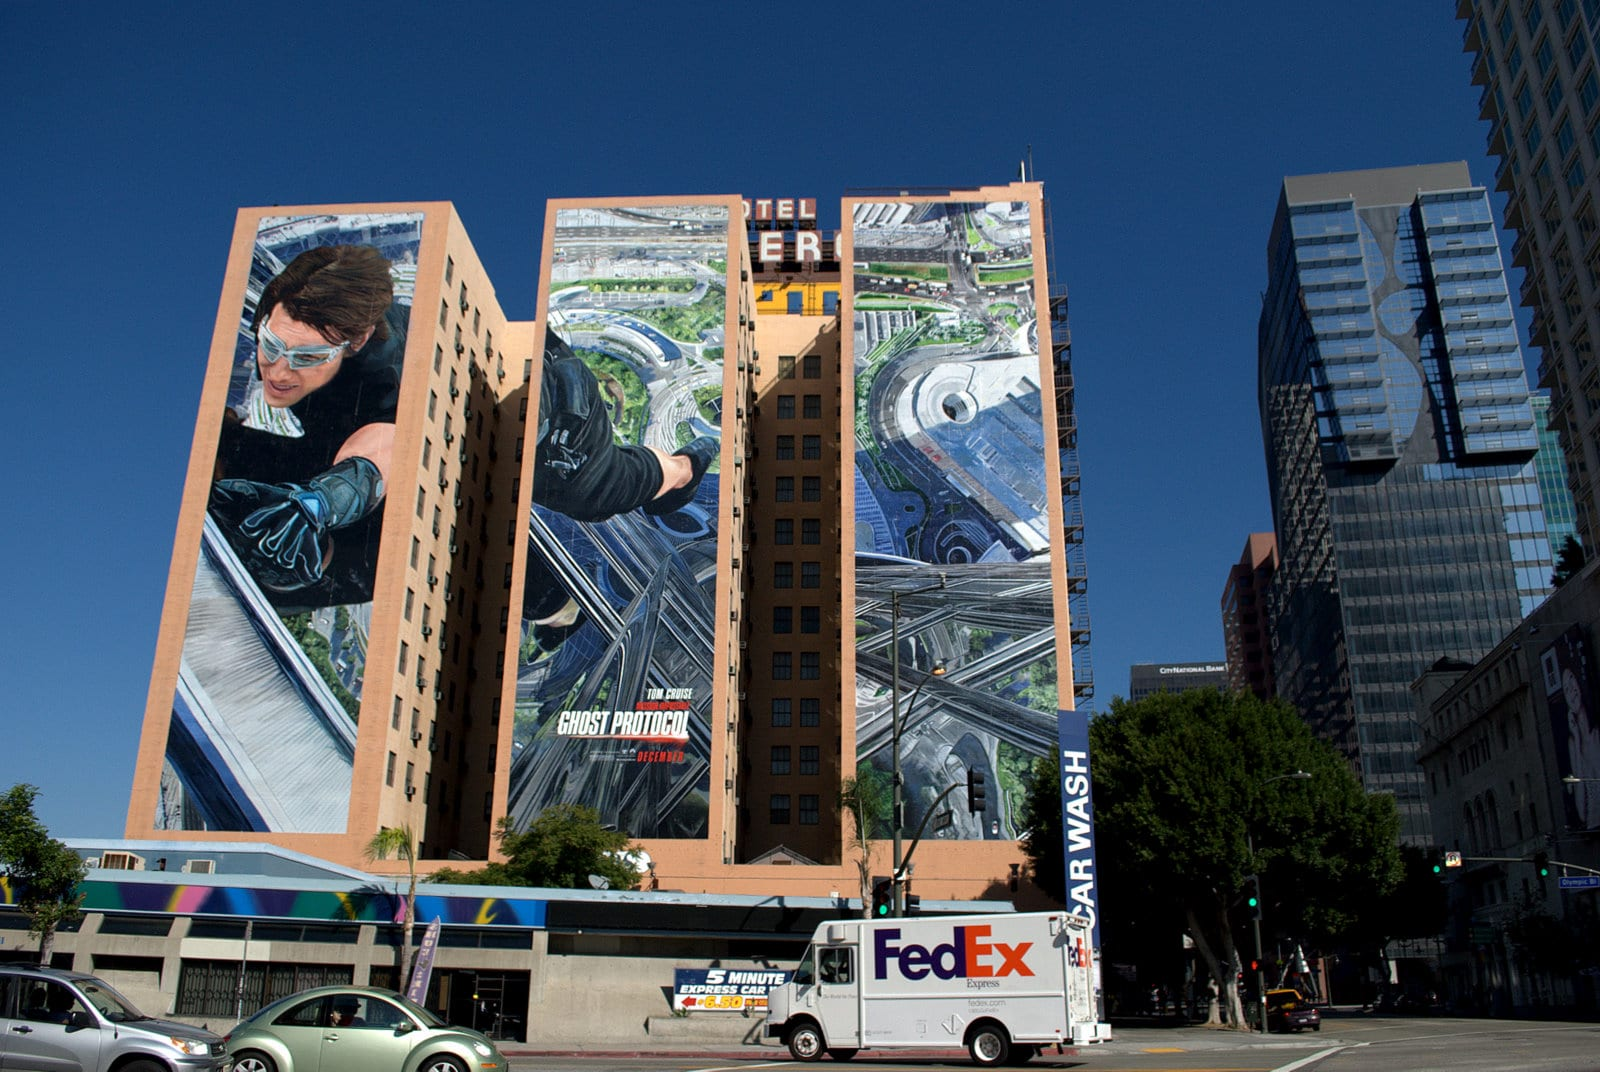 Billboard Mural at the Hotel Figueroa, Los Angeles © | Joe Wolf/Flickr Creative Commons